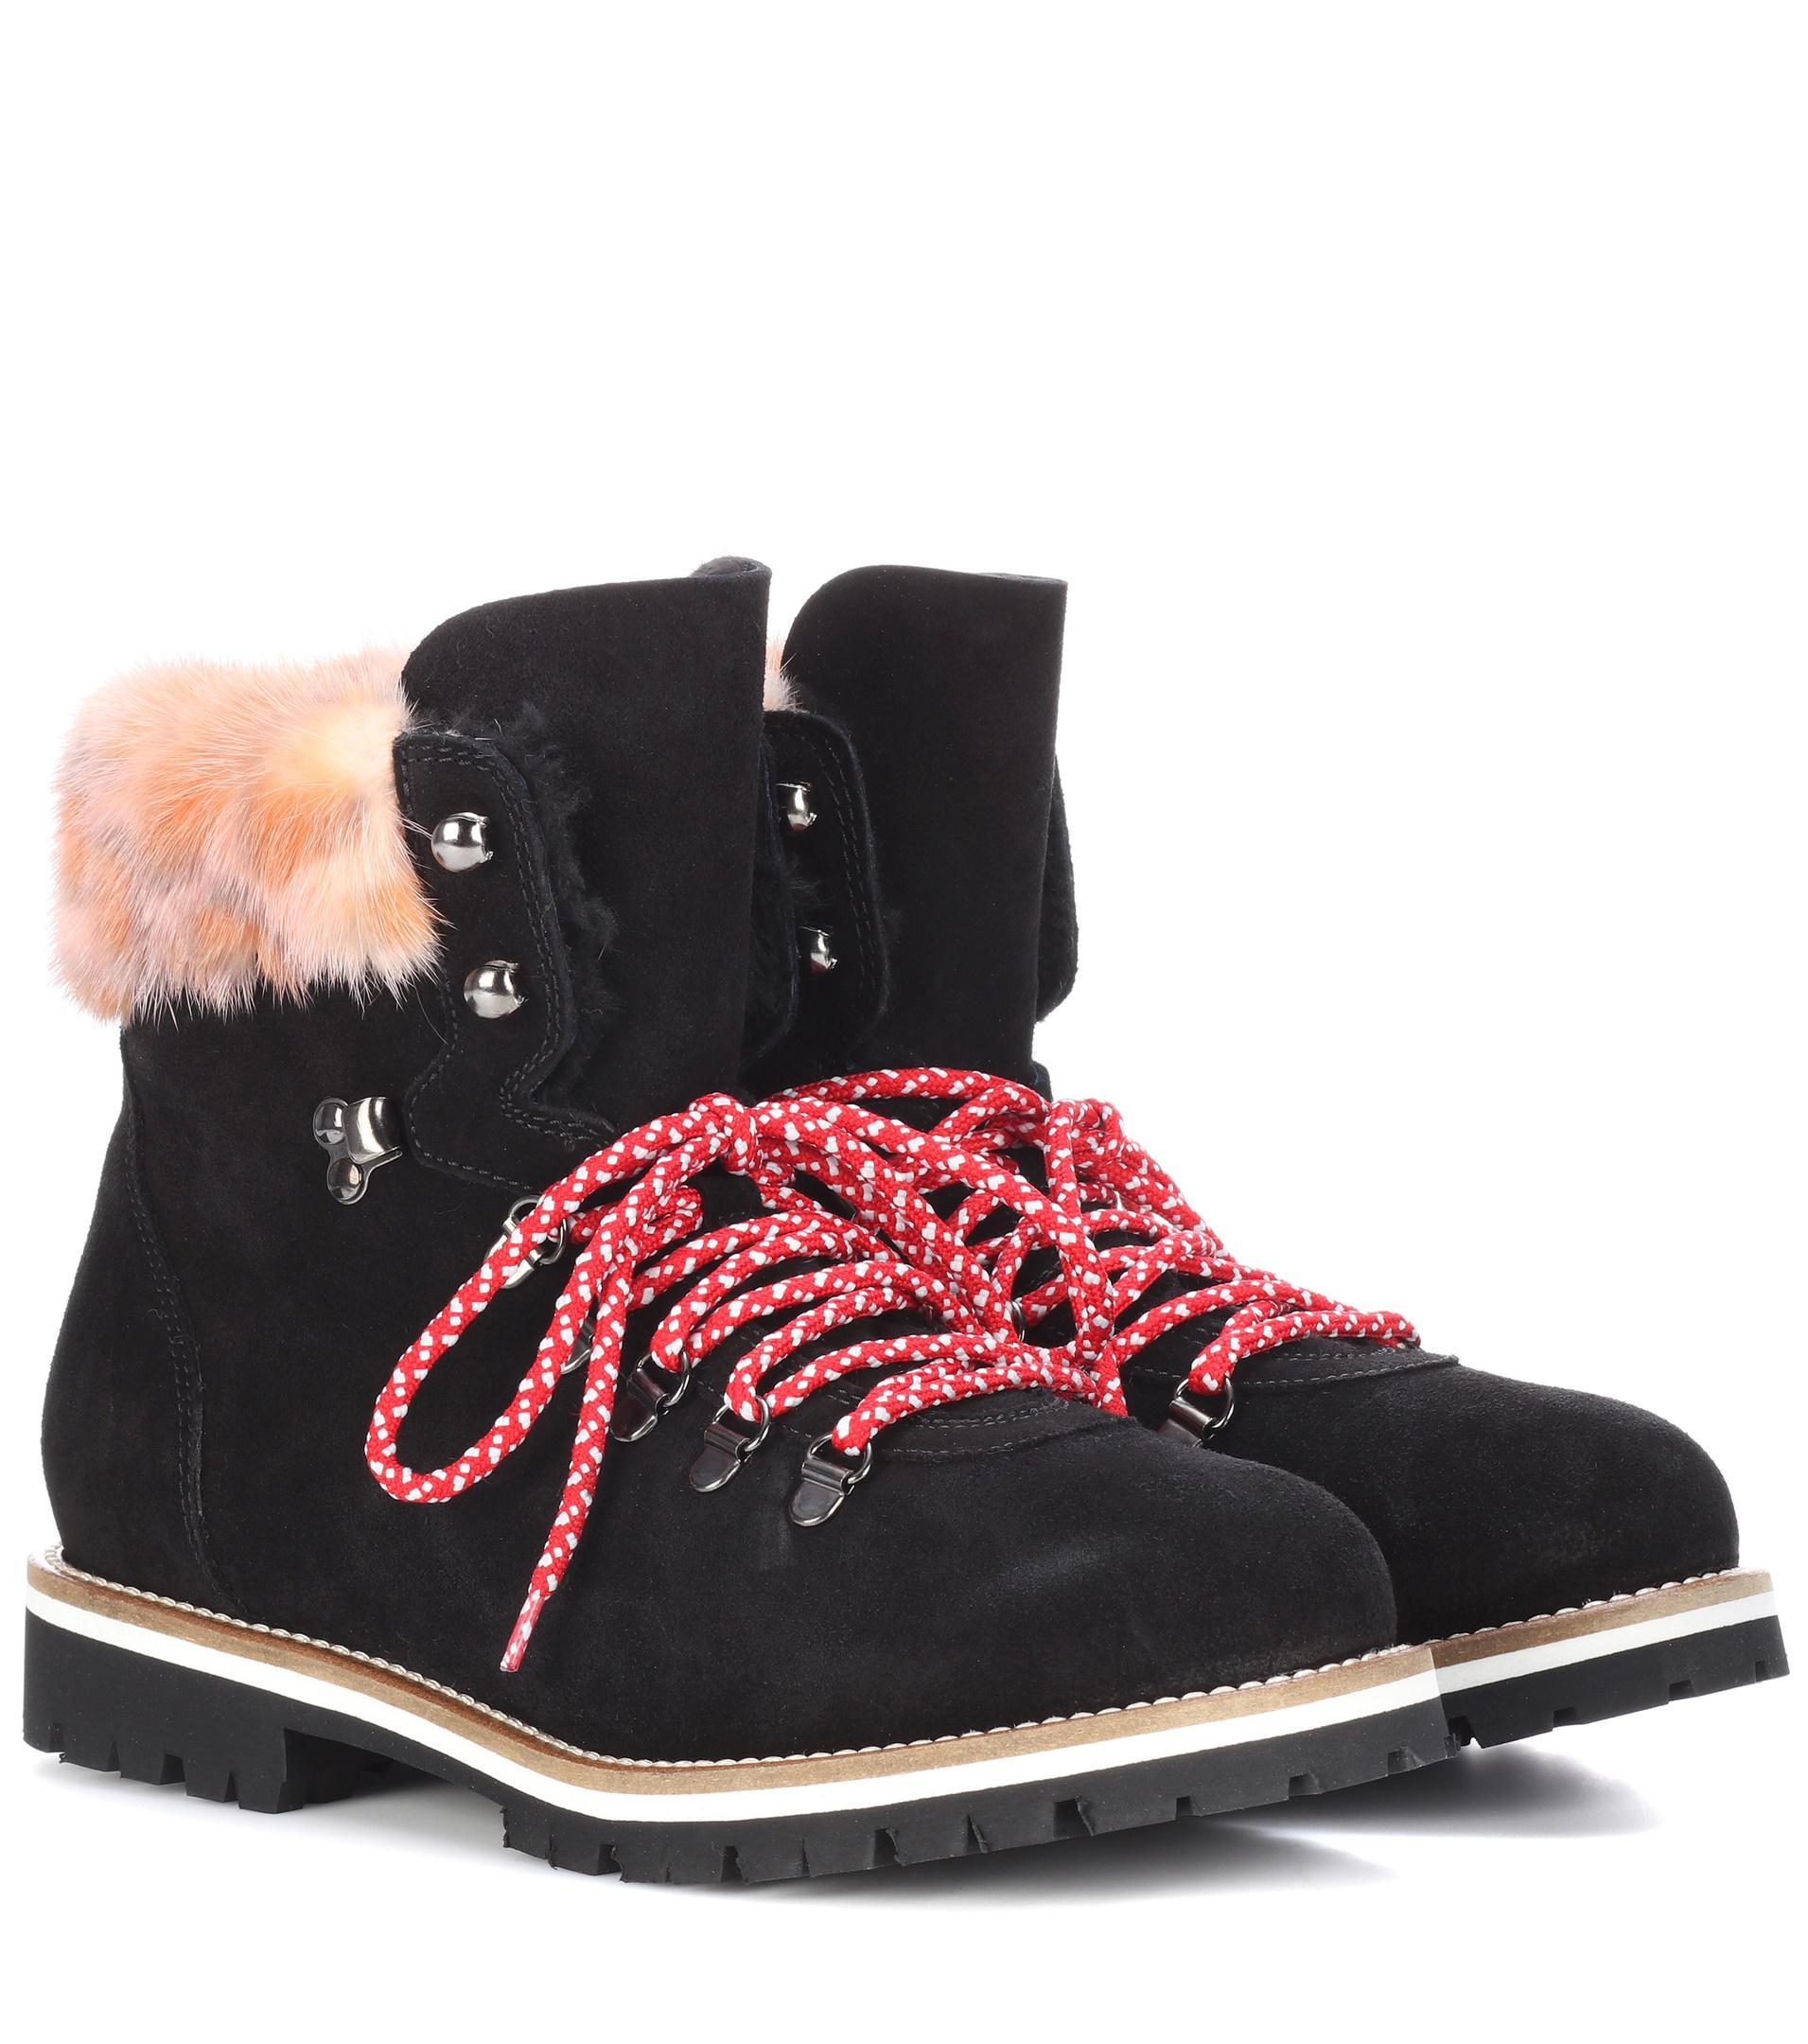 Mr & Mrs Italy Fur-Lined Velvet & Leather Ankle Boots from china free shipping marketable online cheap sale shop for dYU2mL